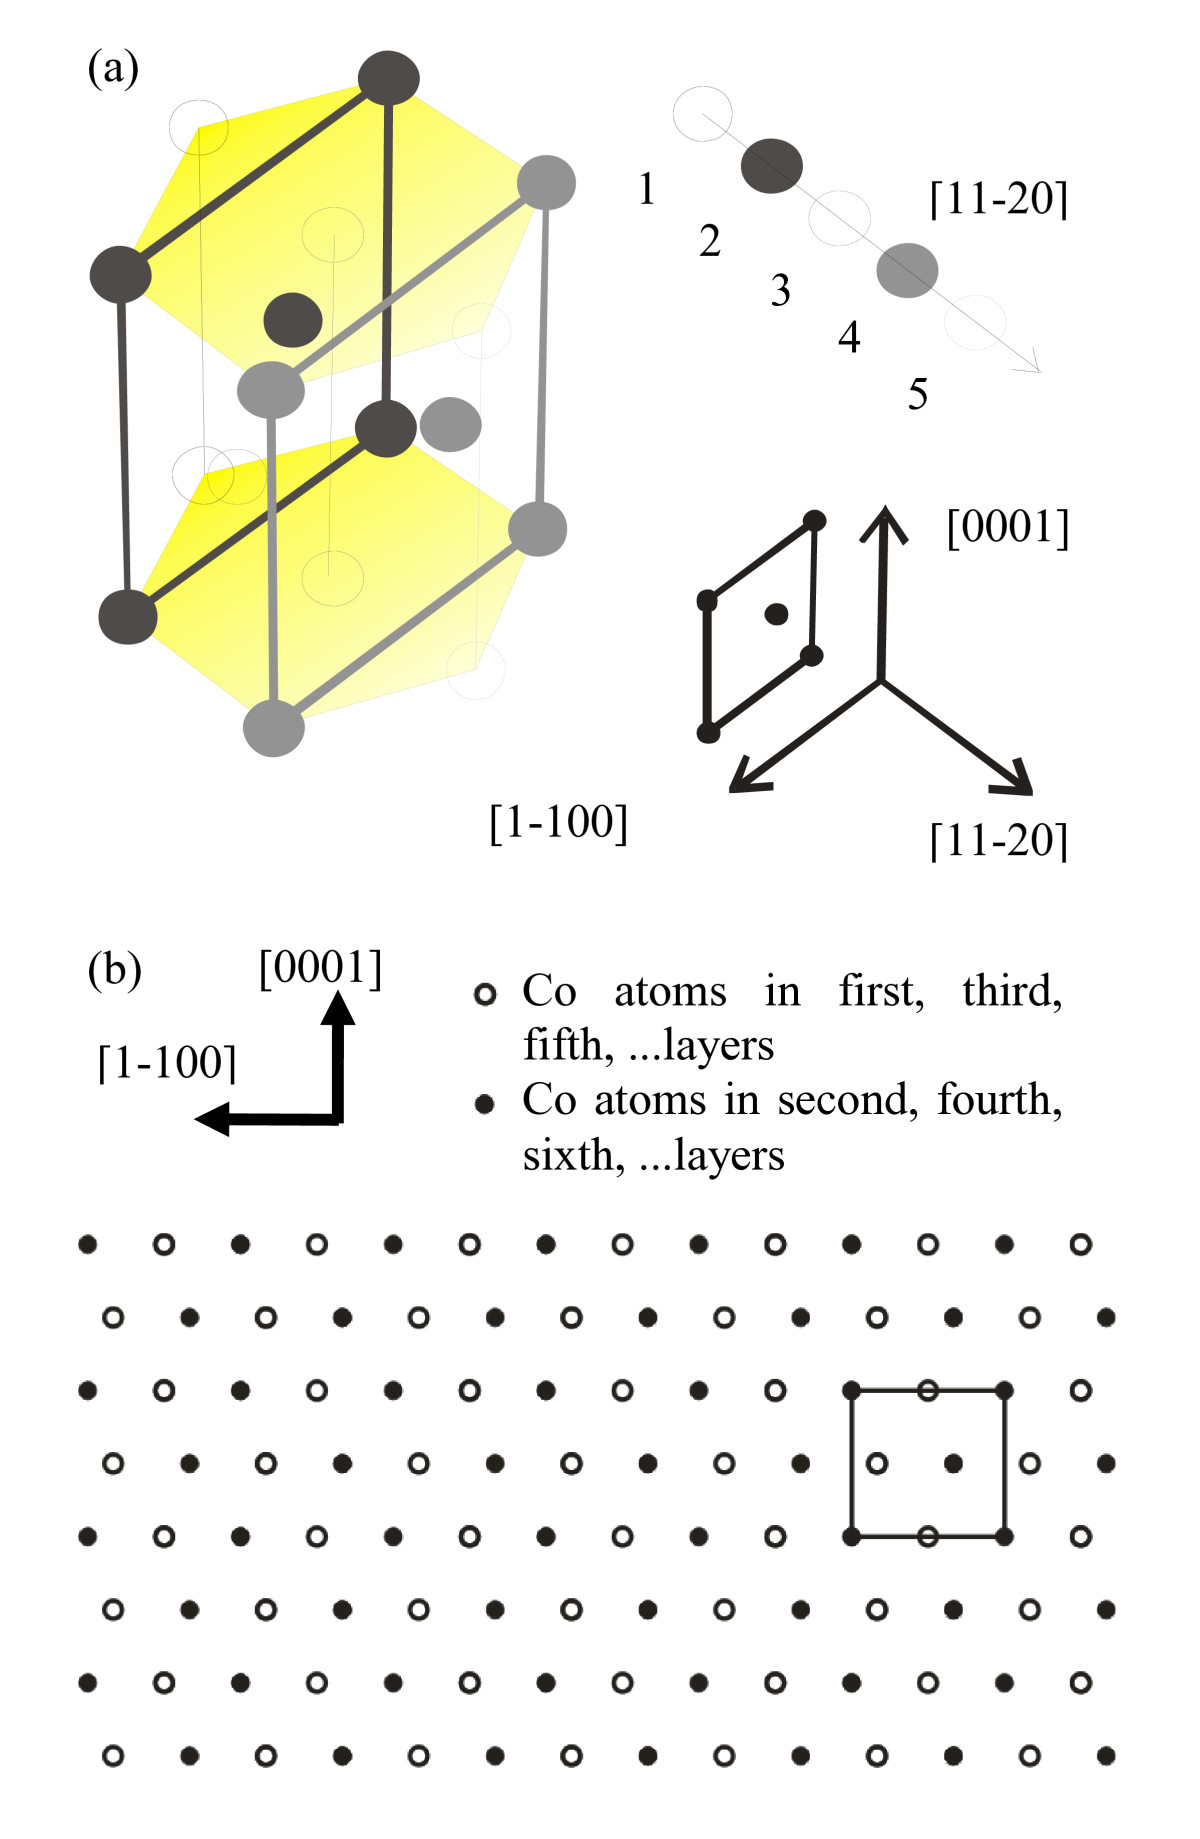 http://static-content.springer.com/image/art%3A10.1186%2F1556-276X-7-189/MediaObjects/11671_2011_Article_757_Fig2_HTML.jpg